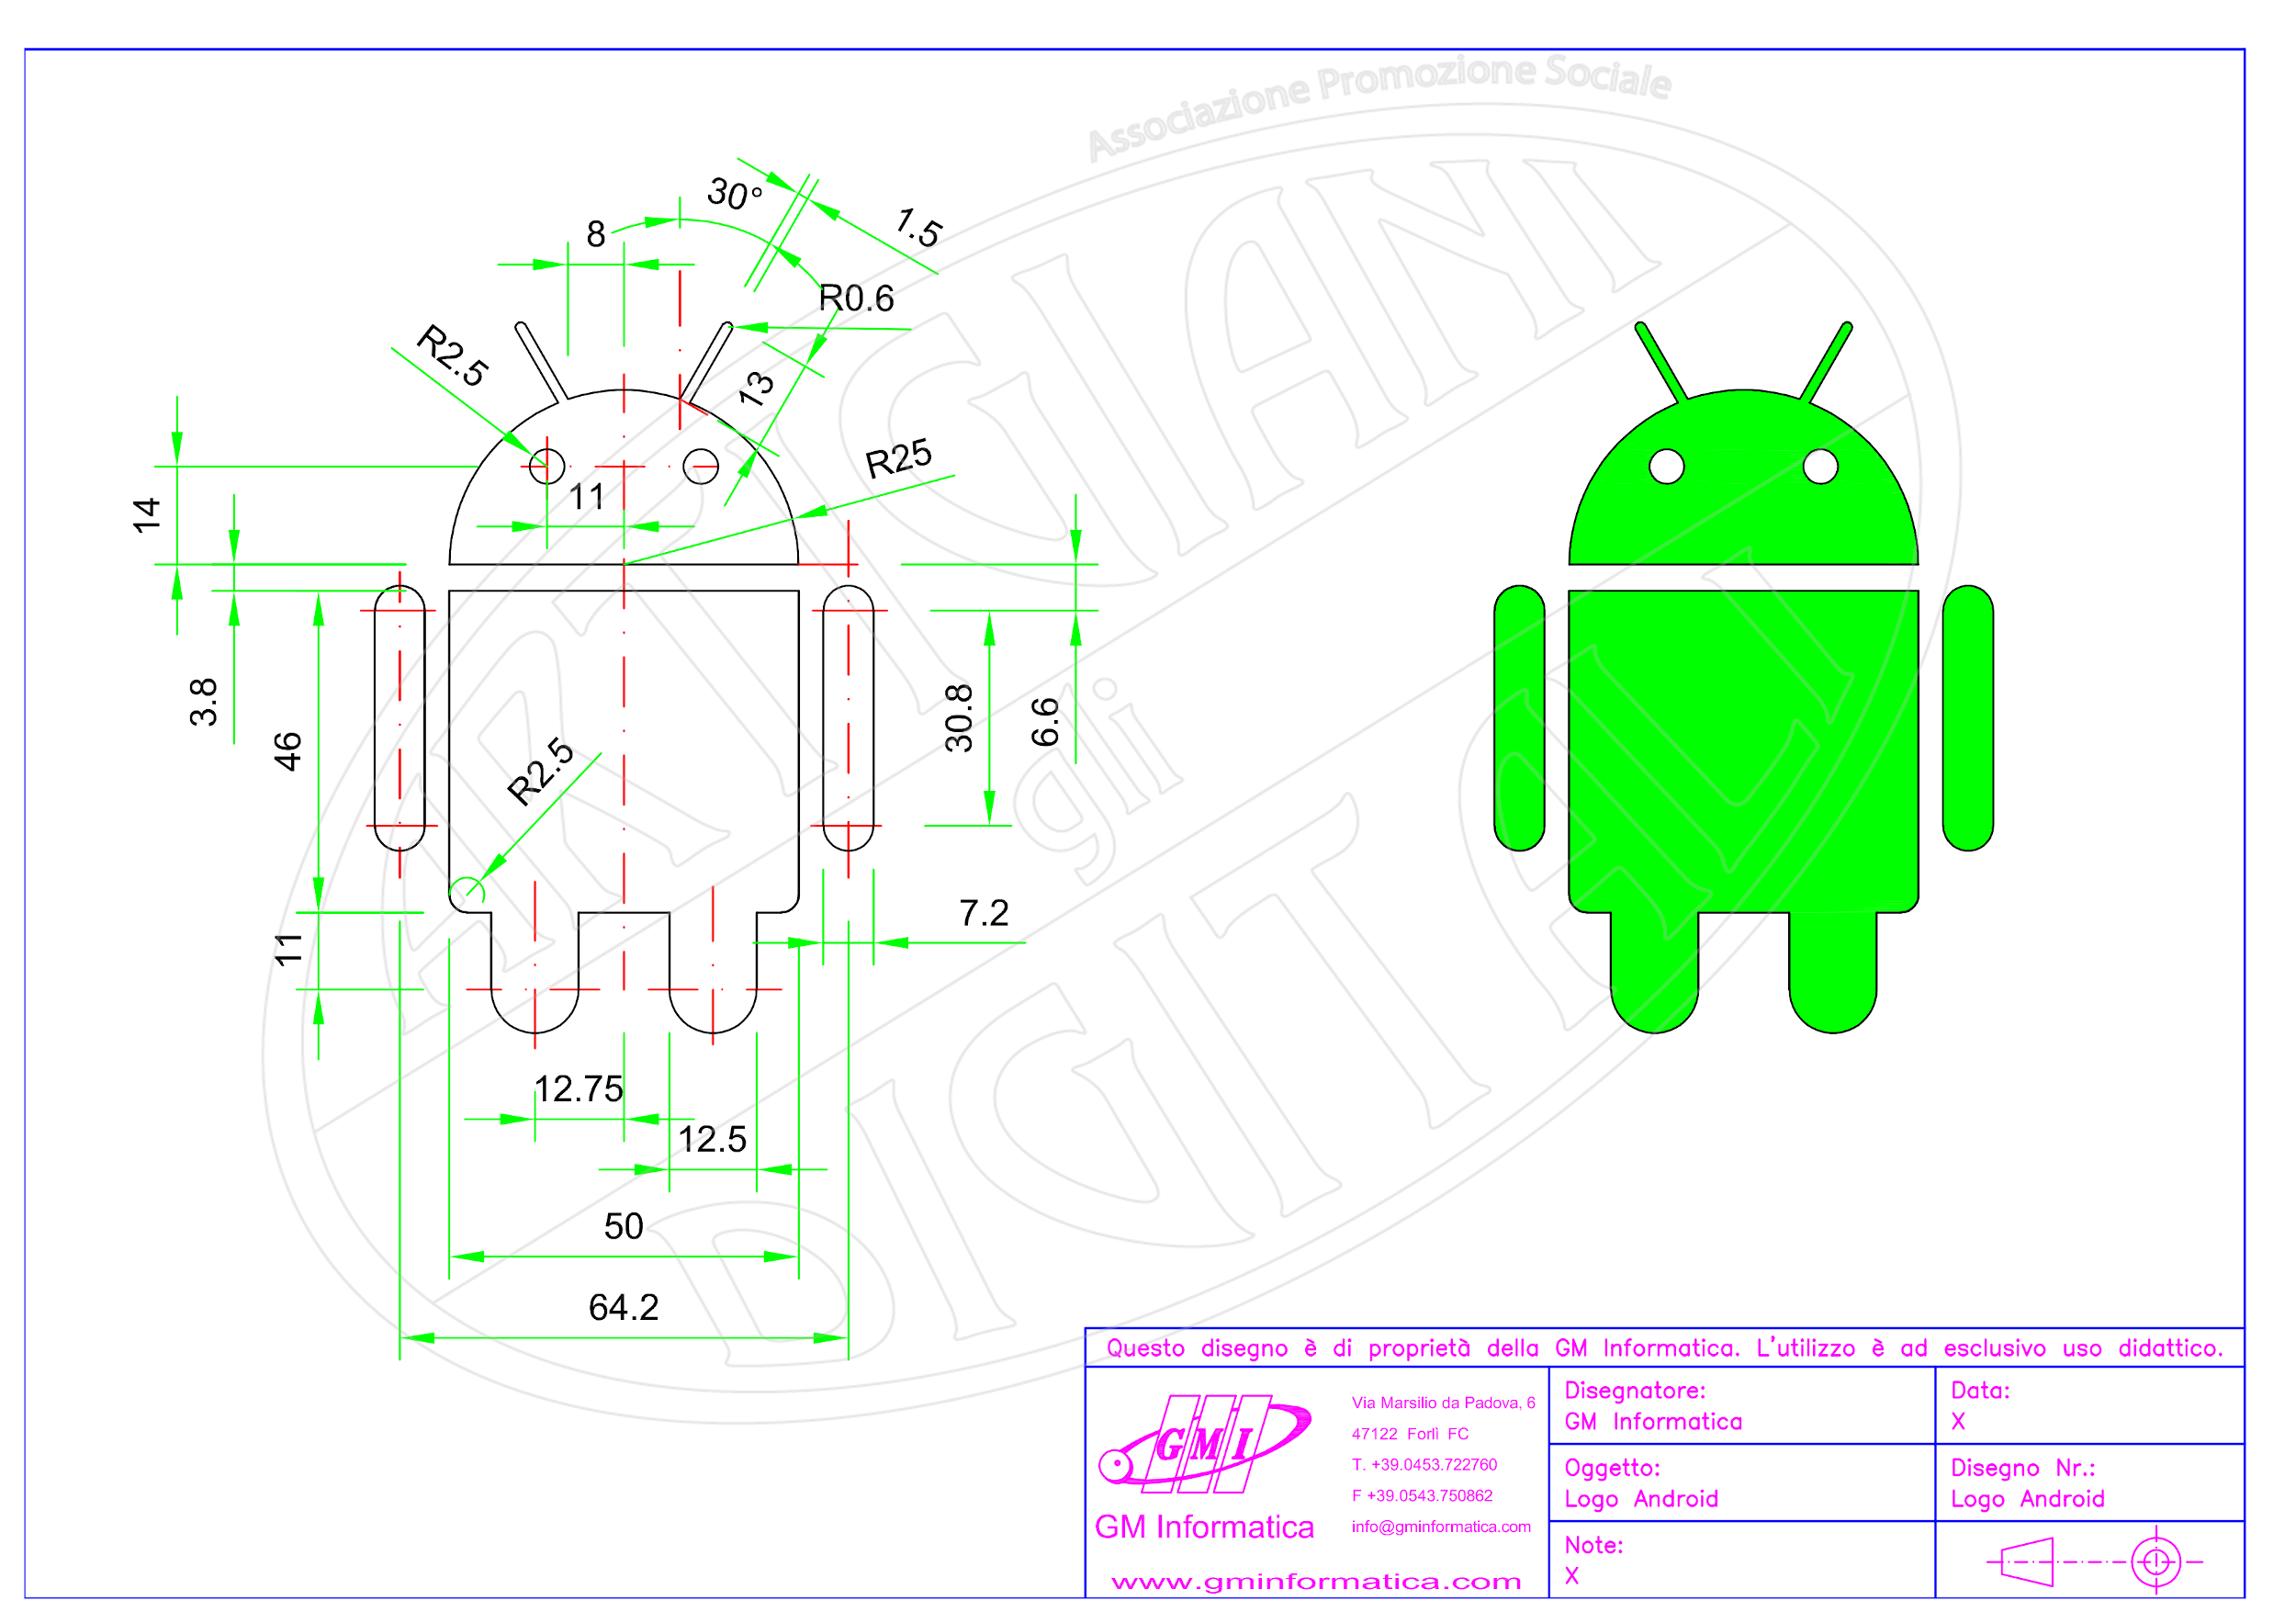 Android Logo - 2D